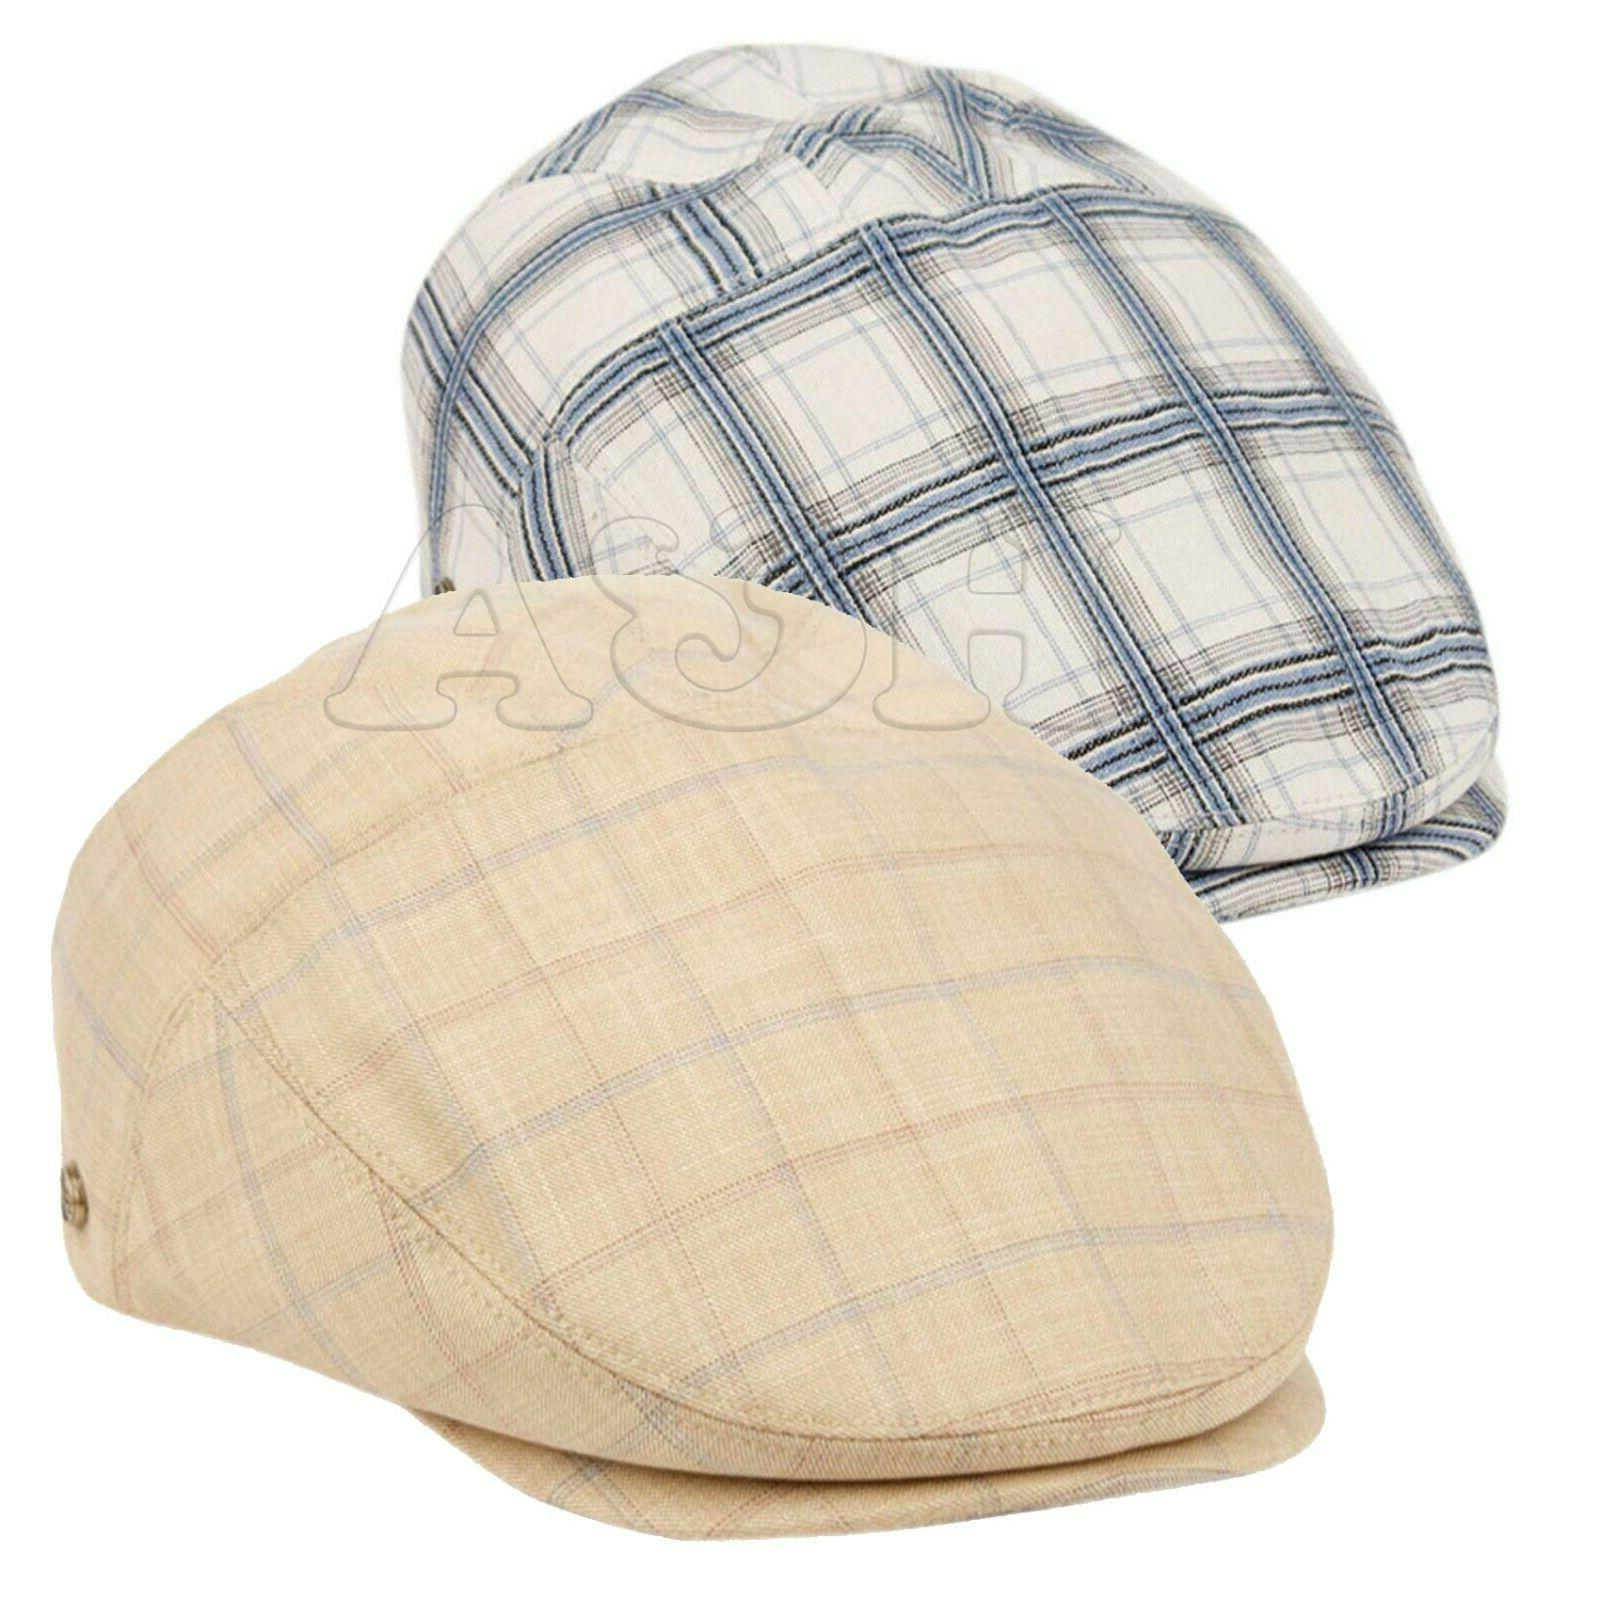 men s cotton flat ivy caps summer